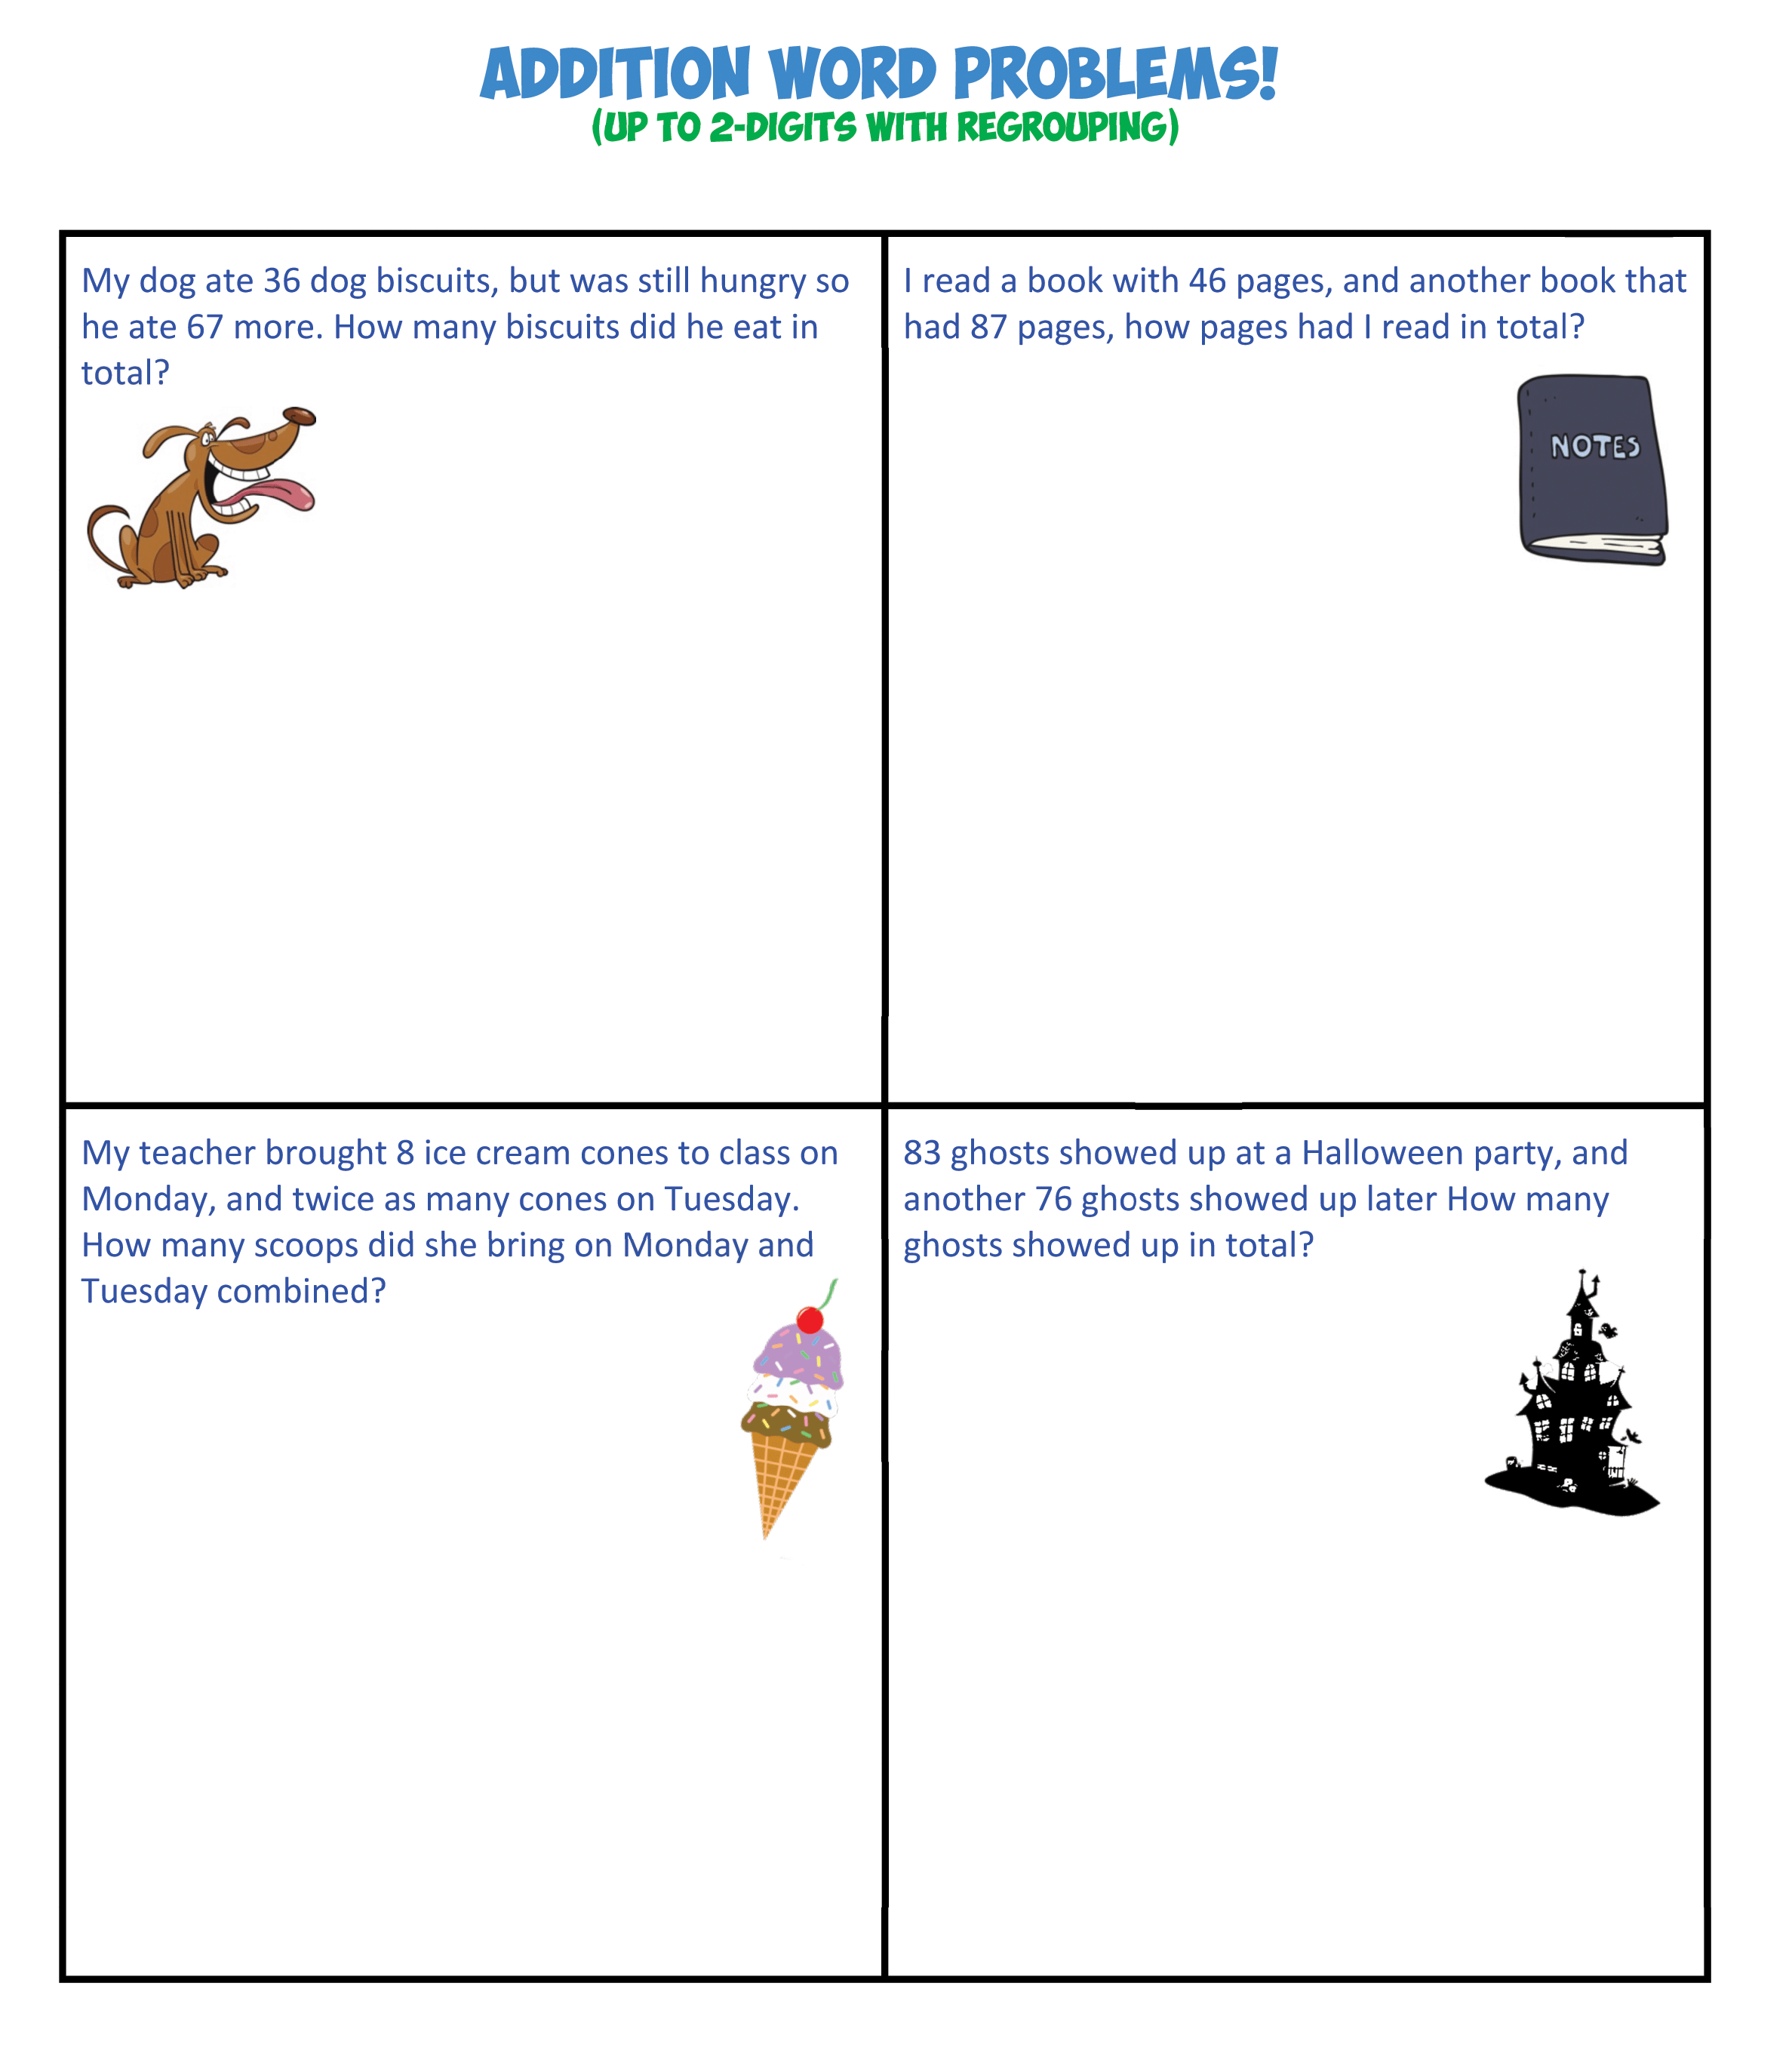 addition word problems 2 digits no regroup